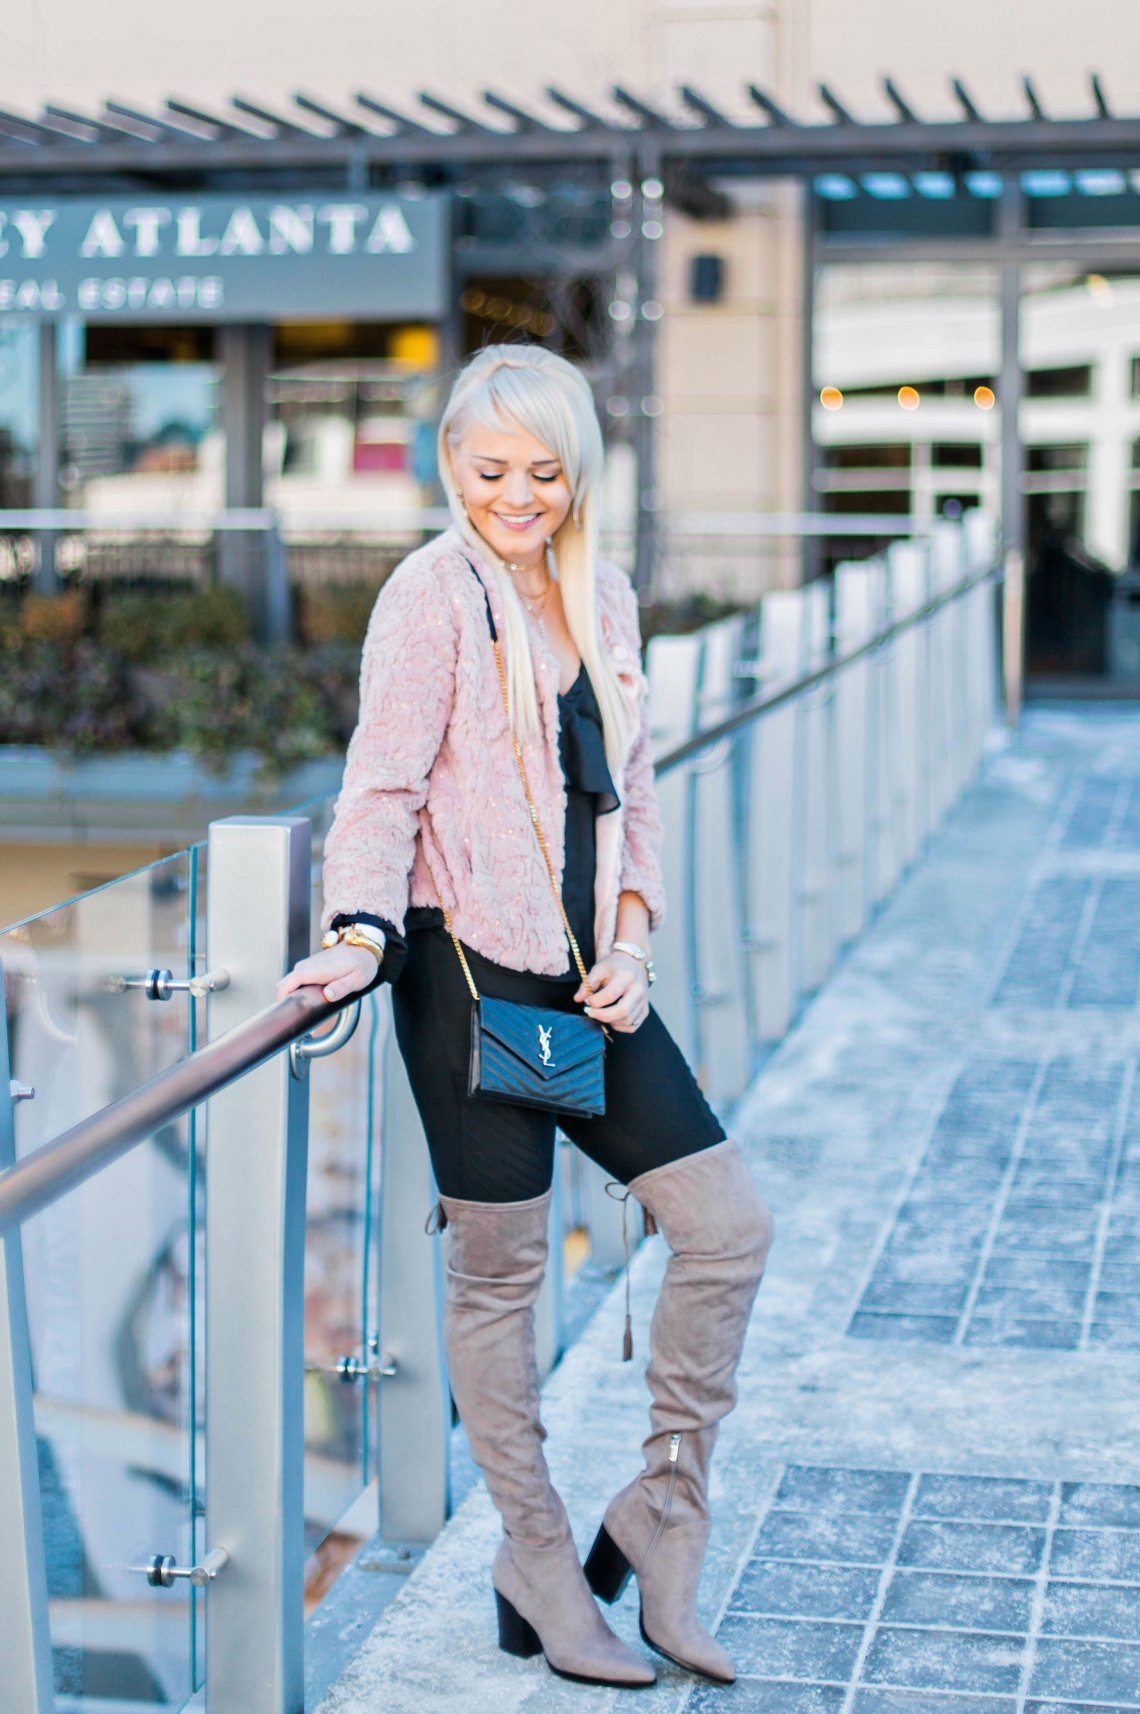 one-shoulder-top-for-27-nordstrom-ruffles-winter-style-boots-pink-faux-fur-jacket-fashion-blogger